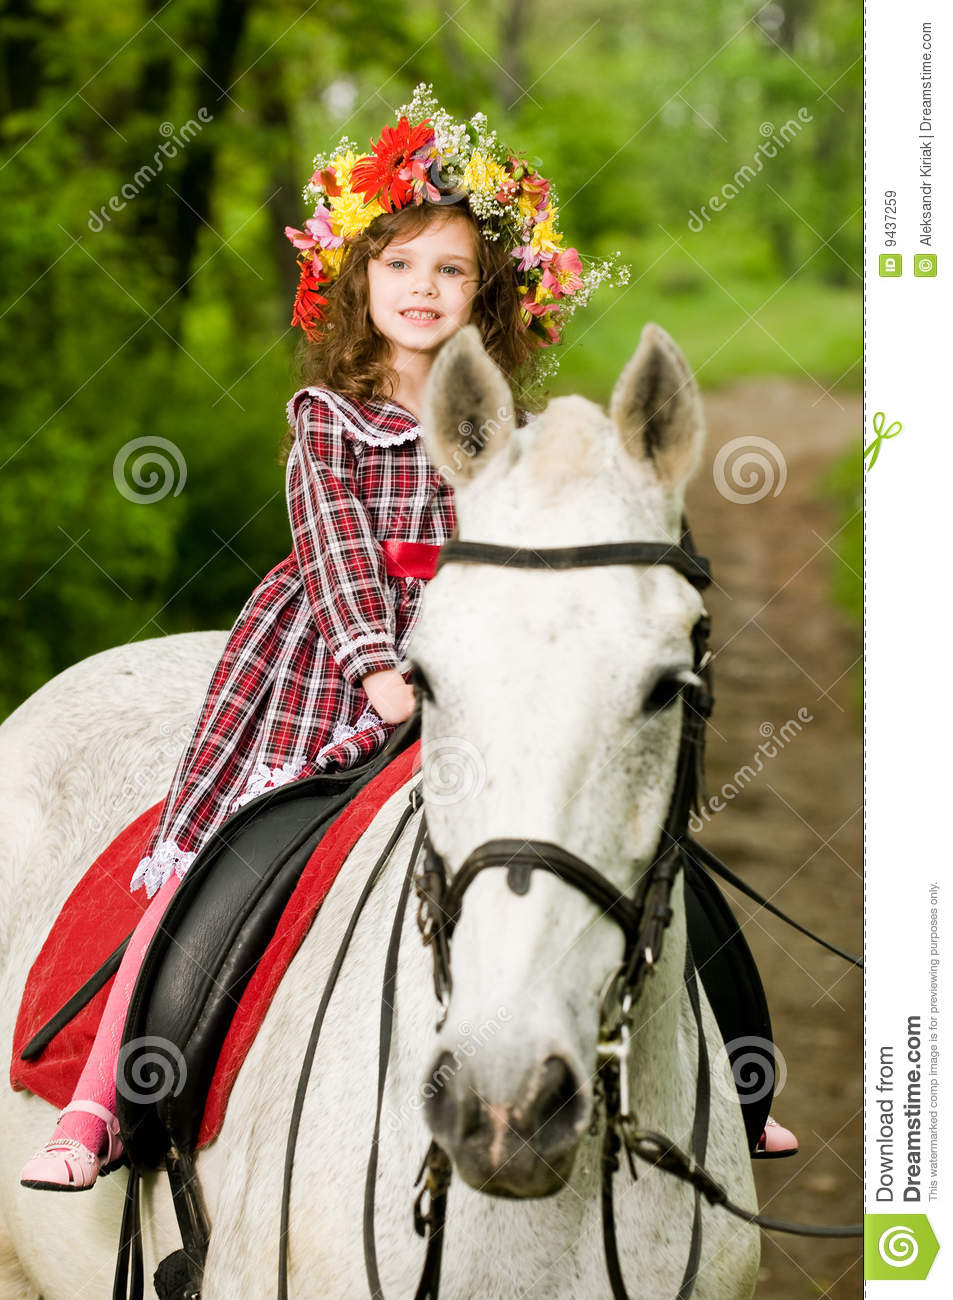 Little girl in floral wreath riding horse